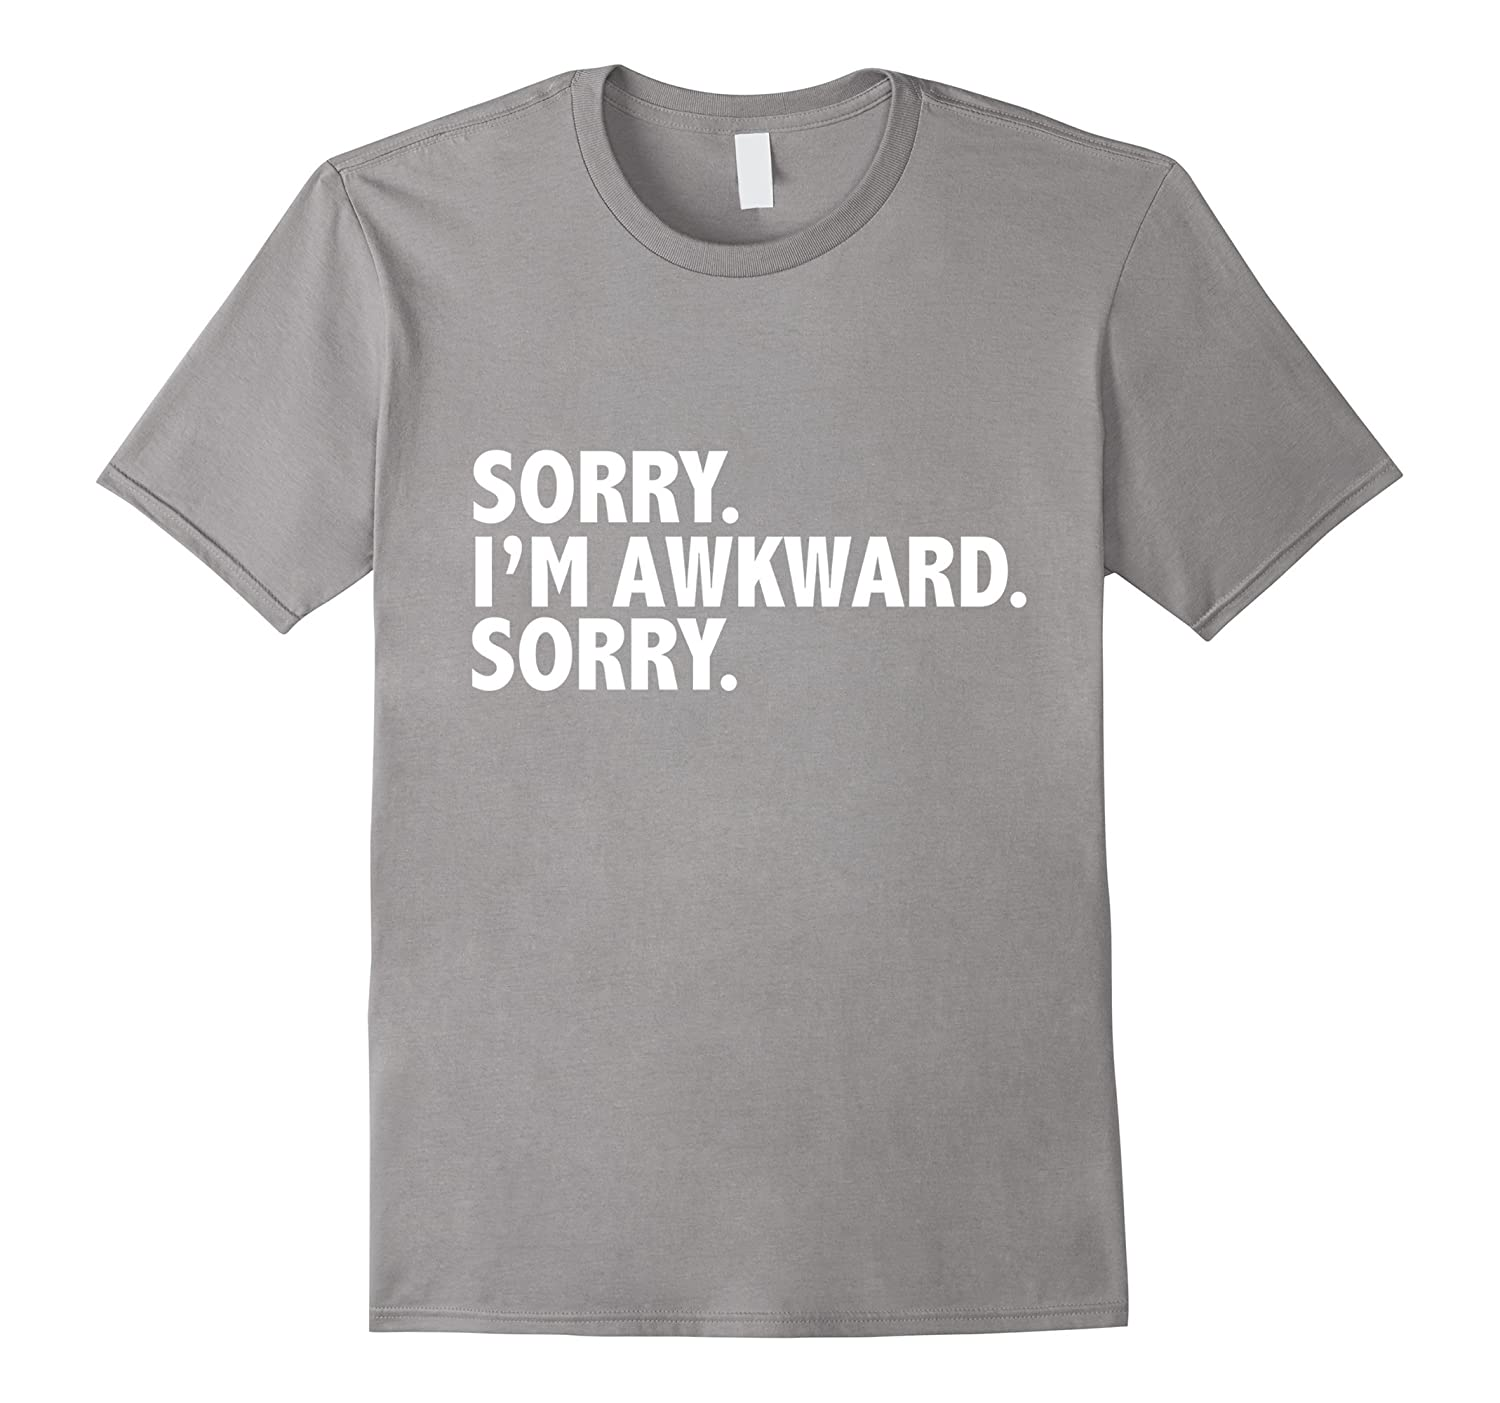 Sorry I am awkward funny t-shirt Introvert Anti-social Gift-CL